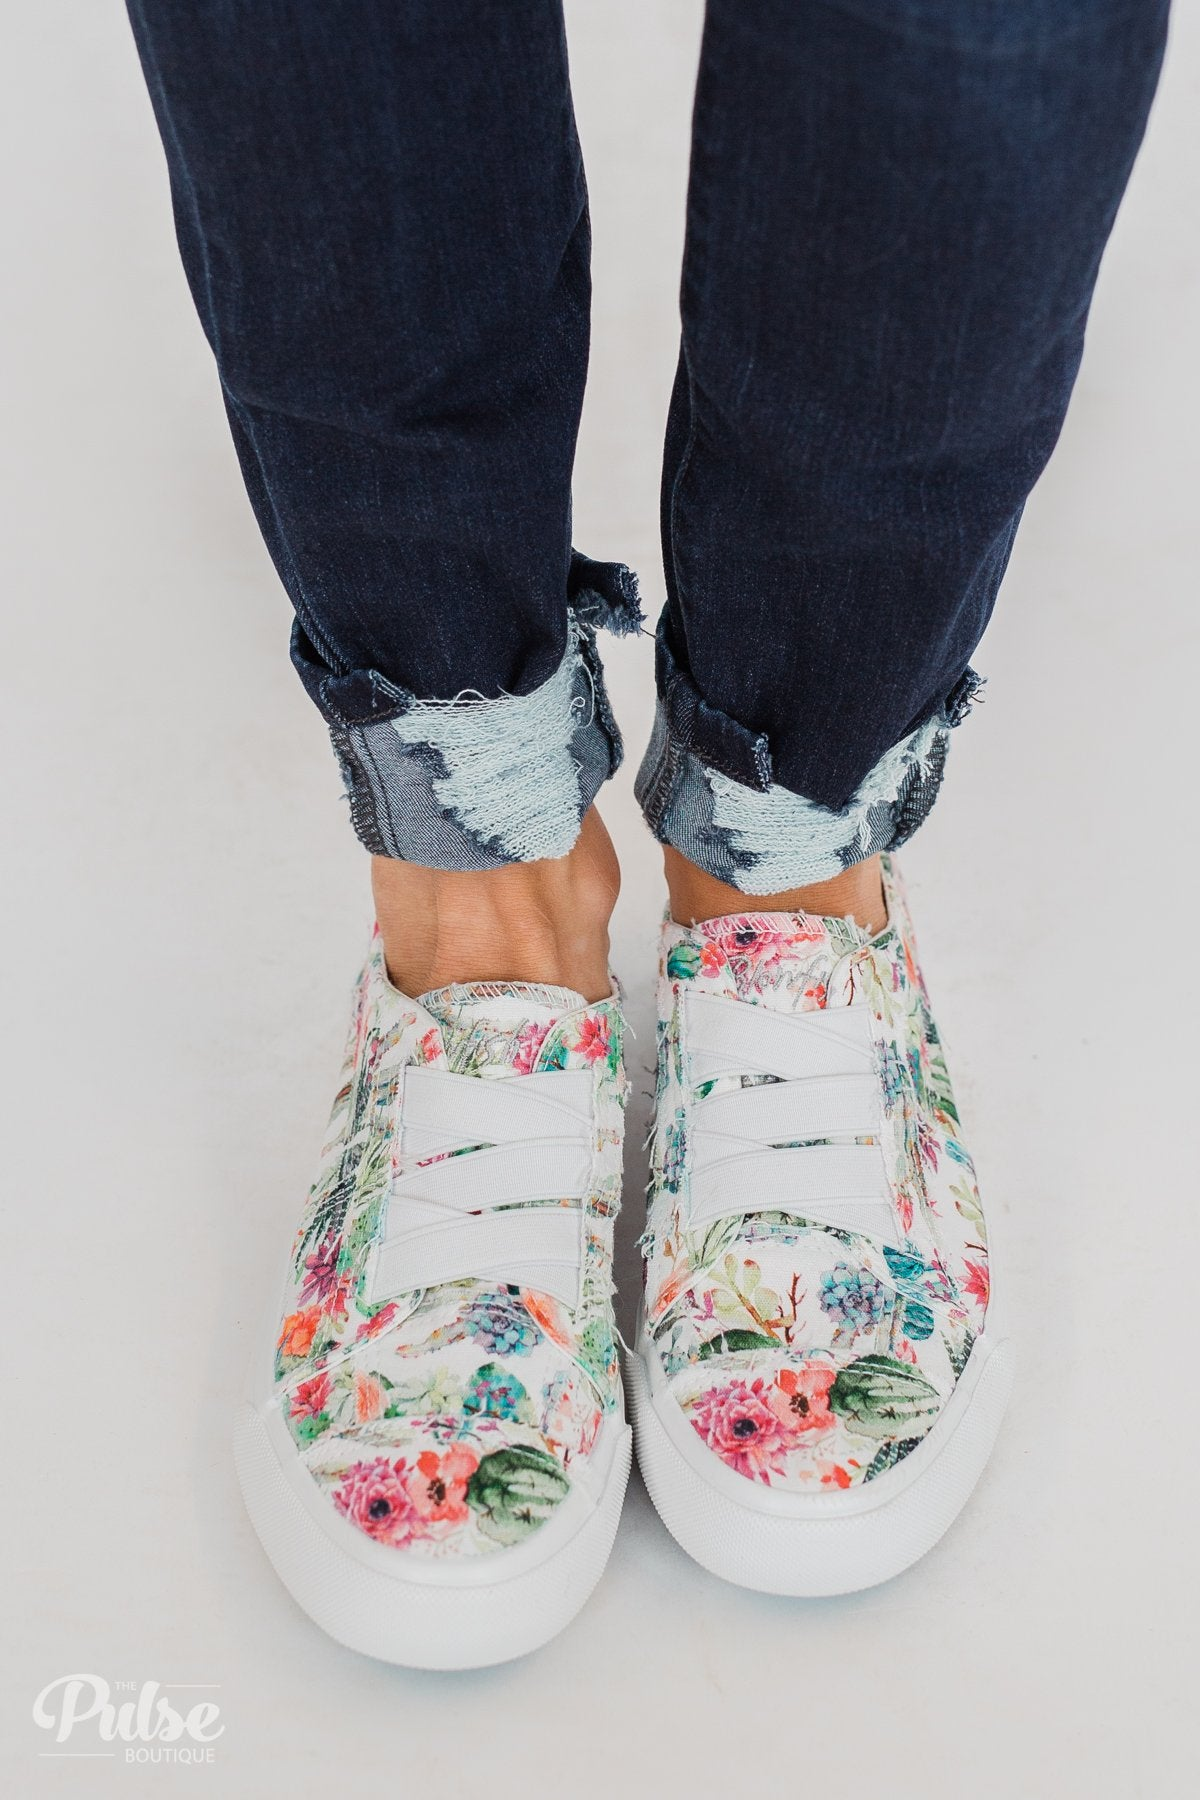 Blowfish Marley Sneakers- Off White Cactus Flower Print